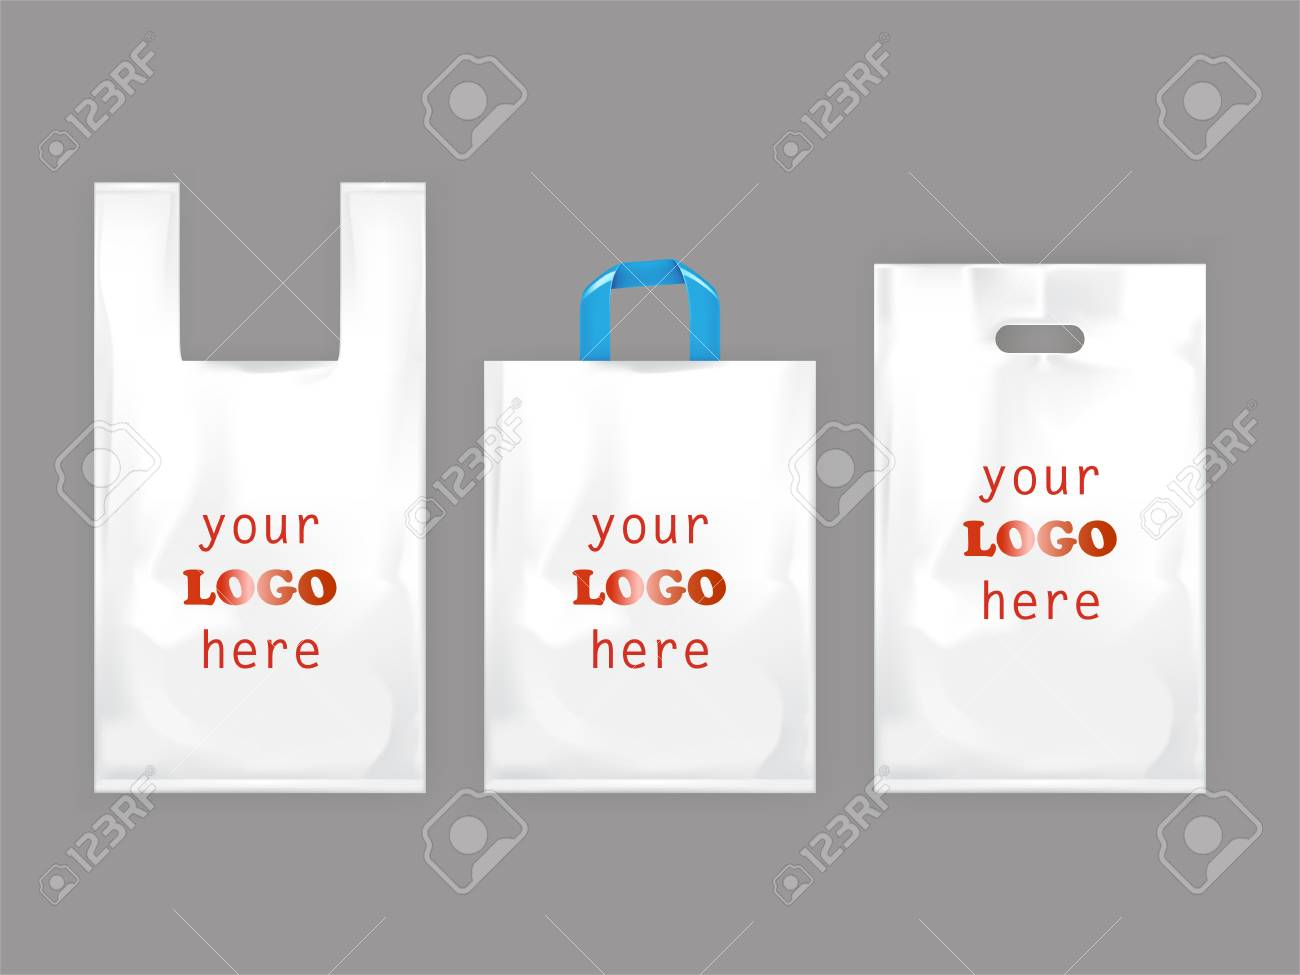 The food shopping bags have dual advantage factor, one it serves as a carrier to carry the goods purchased and two, it acts as a best marketing strategy to spread your brand in the market. White Plastic Shopping Bags Disposable T Shirt Bag Packaging Set Realistic Illustrations Isolated On Gray Background Mock Up Template Ready For Brand Design Stock Photo Picture And Royalty Free Image Image 106460714